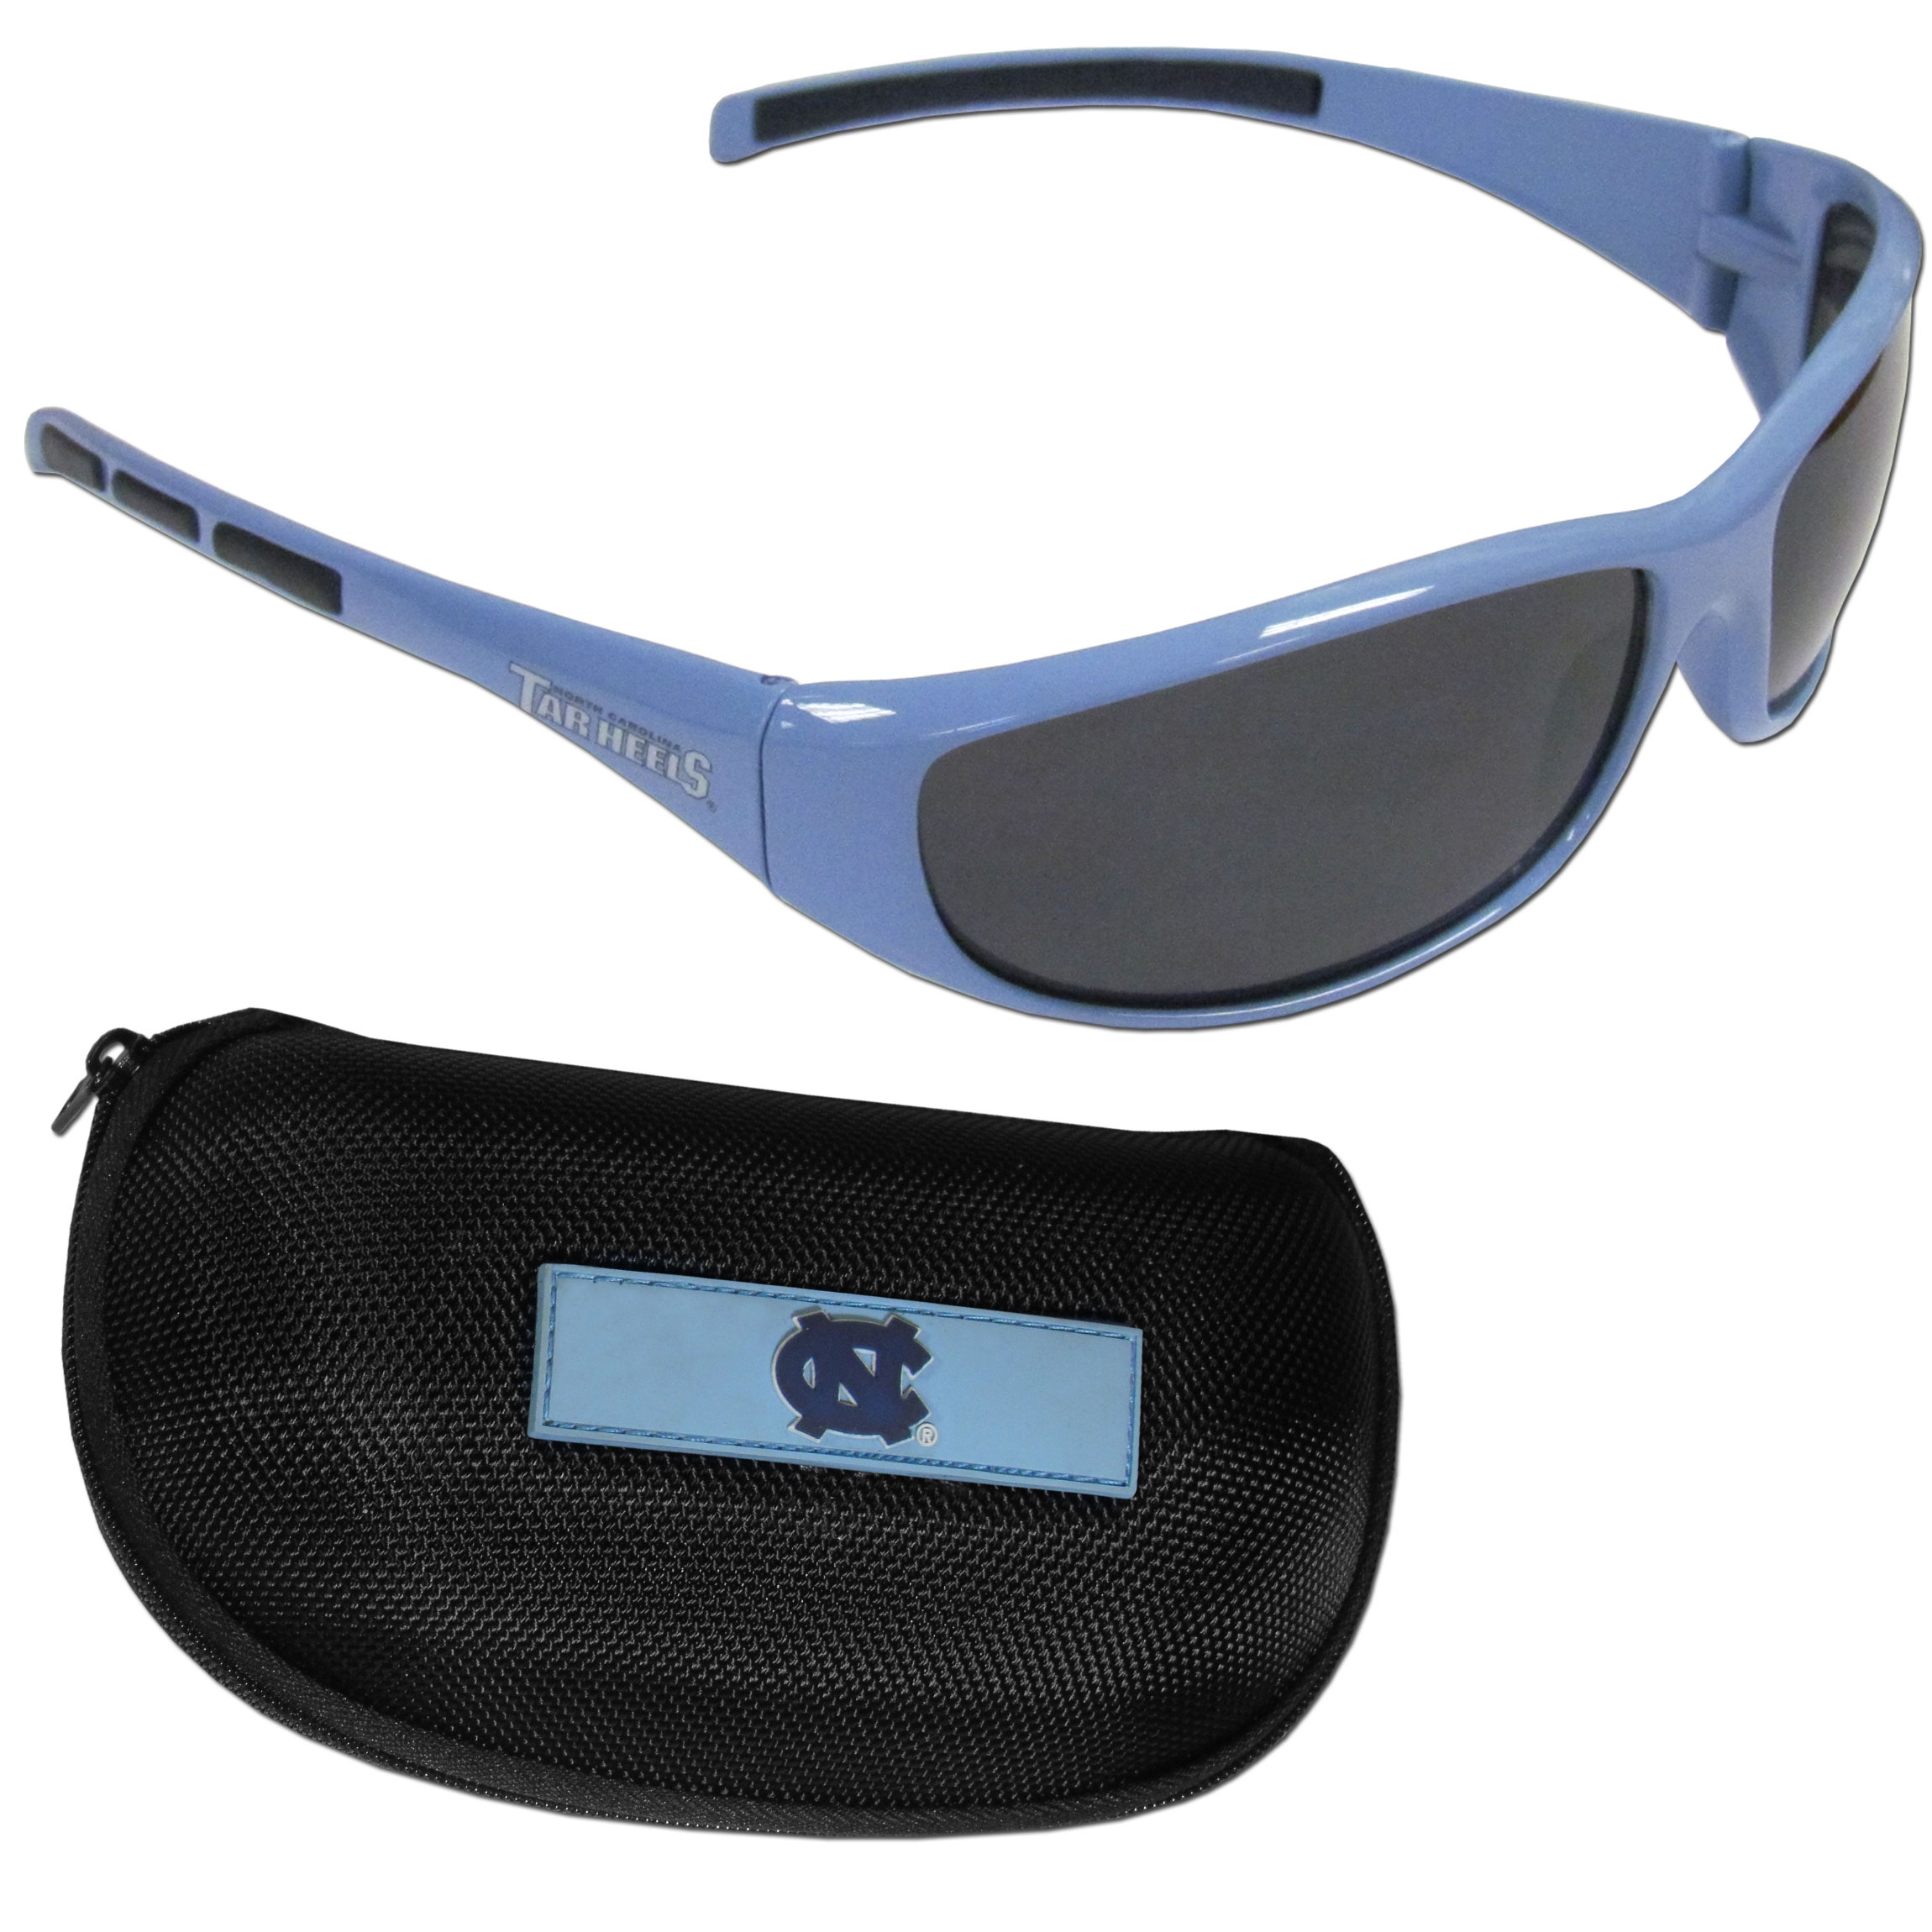 N. Carolina Tar Heels Wrap Sunglass and Case Set - This great set includes a high quality pair of N. Carolina Tar Heels wrap sunglasses and hard carrying case.